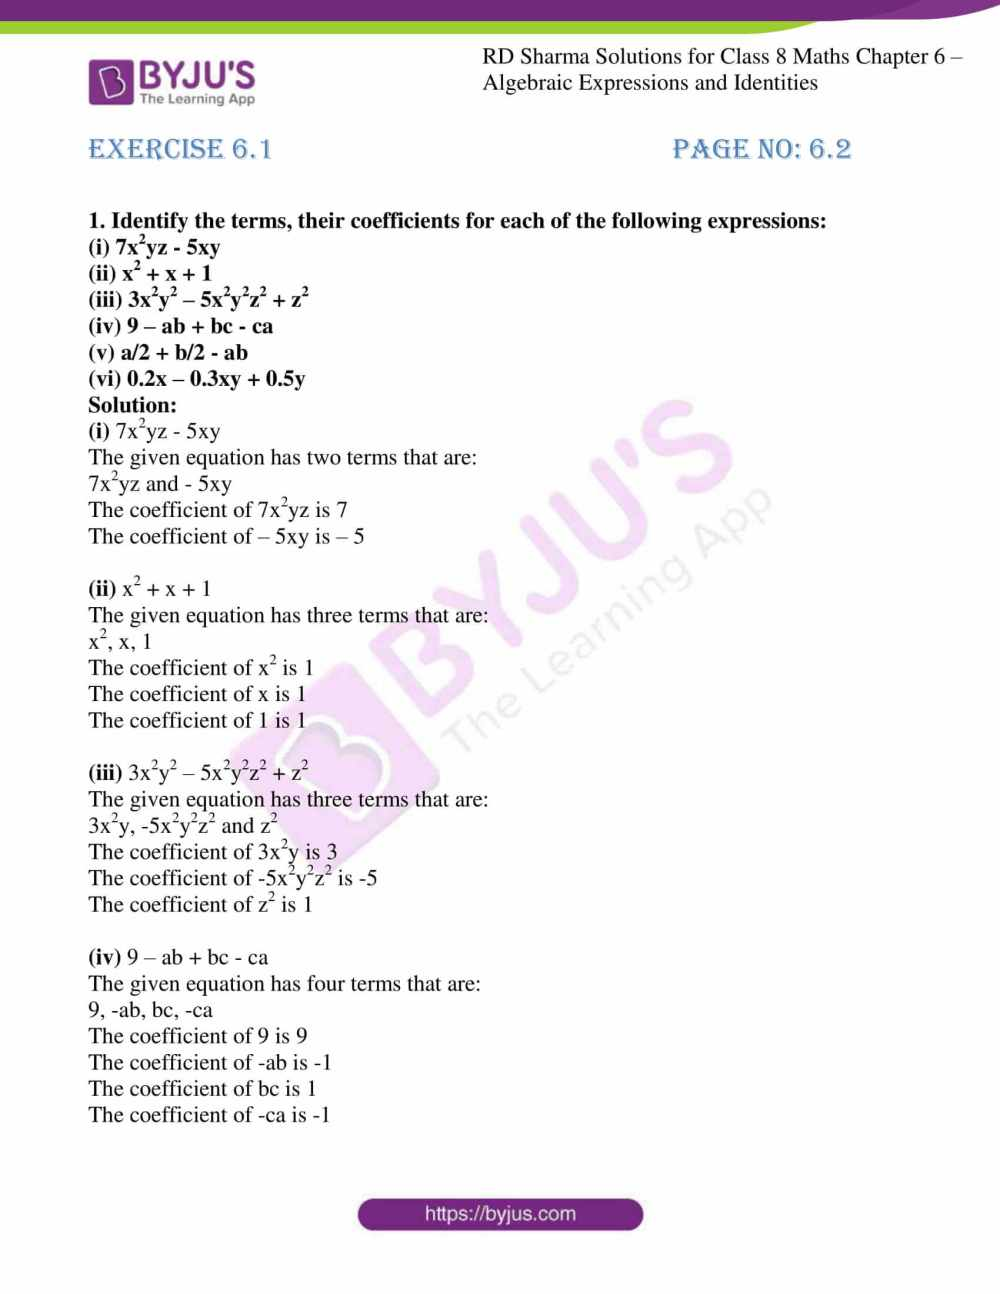 medium resolution of RD Sharma Solutions for Class 8 Chapter 6 - Algebraic Expressions and  Identities Download Free PDF